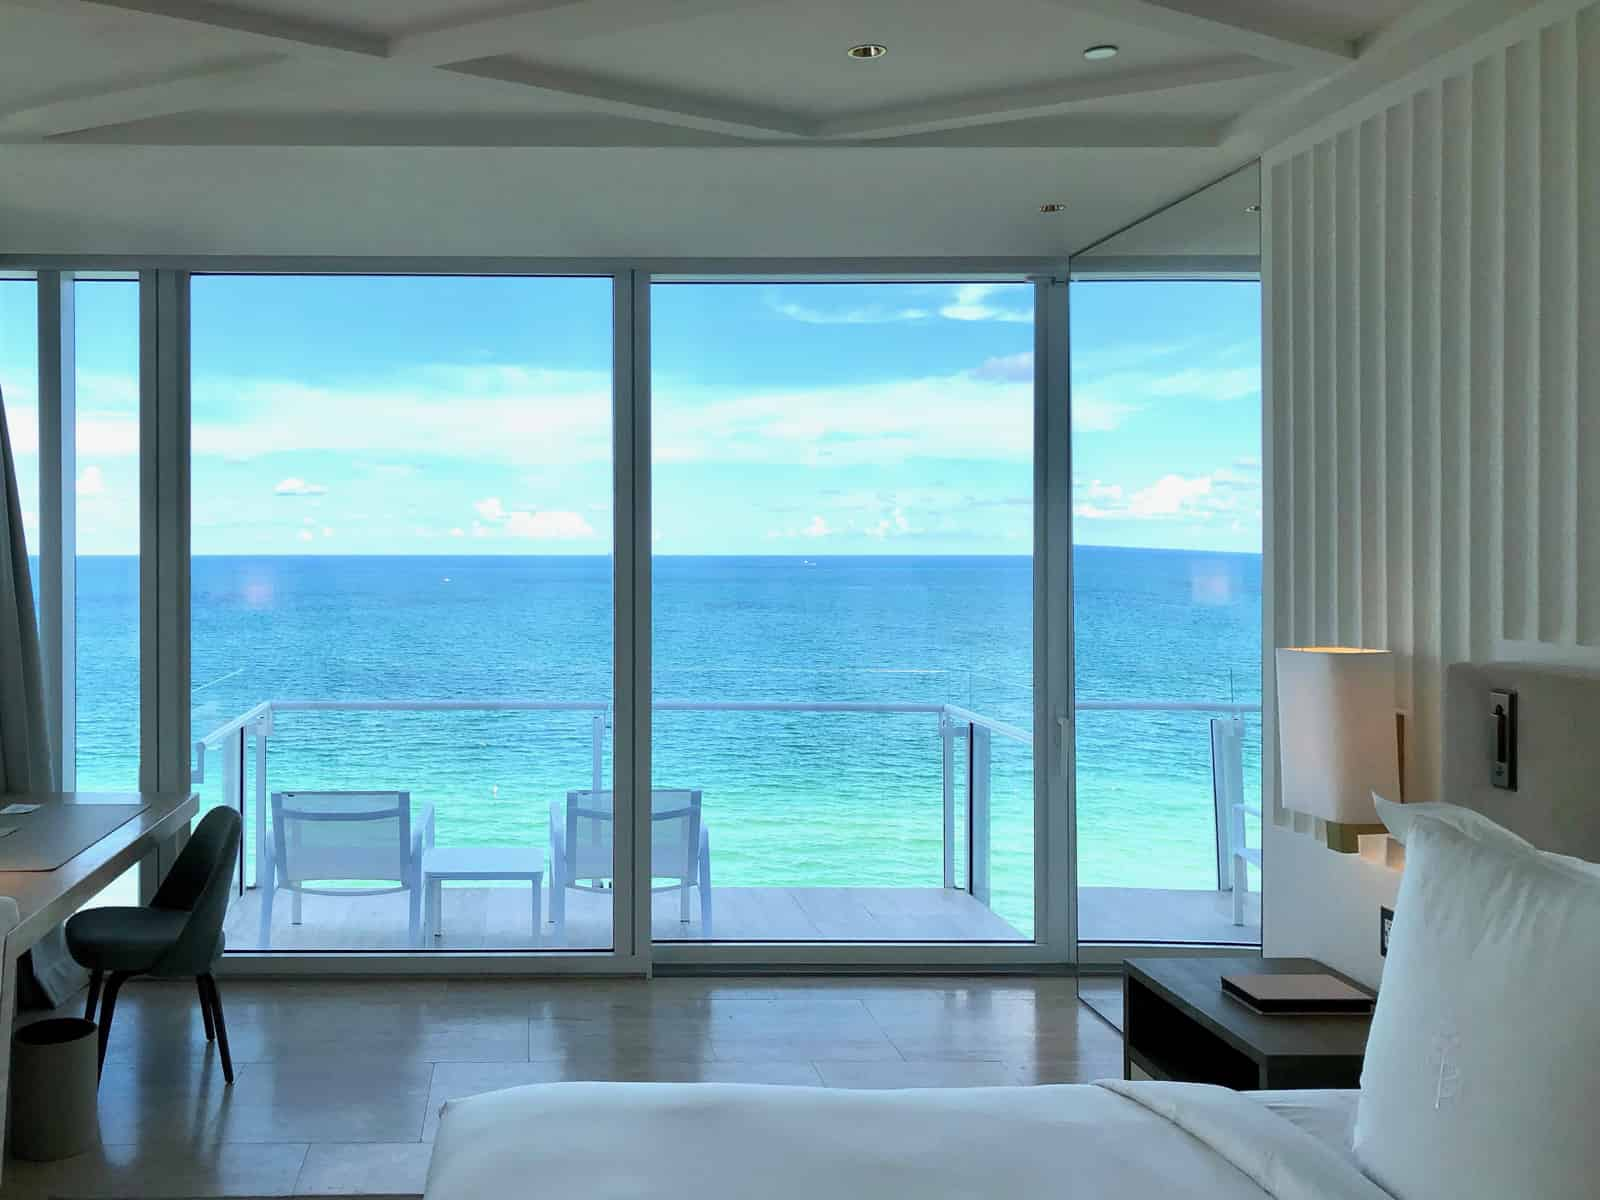 A view of a room at the Four Seasons Surf Club looking out on a balcony and the ocean.